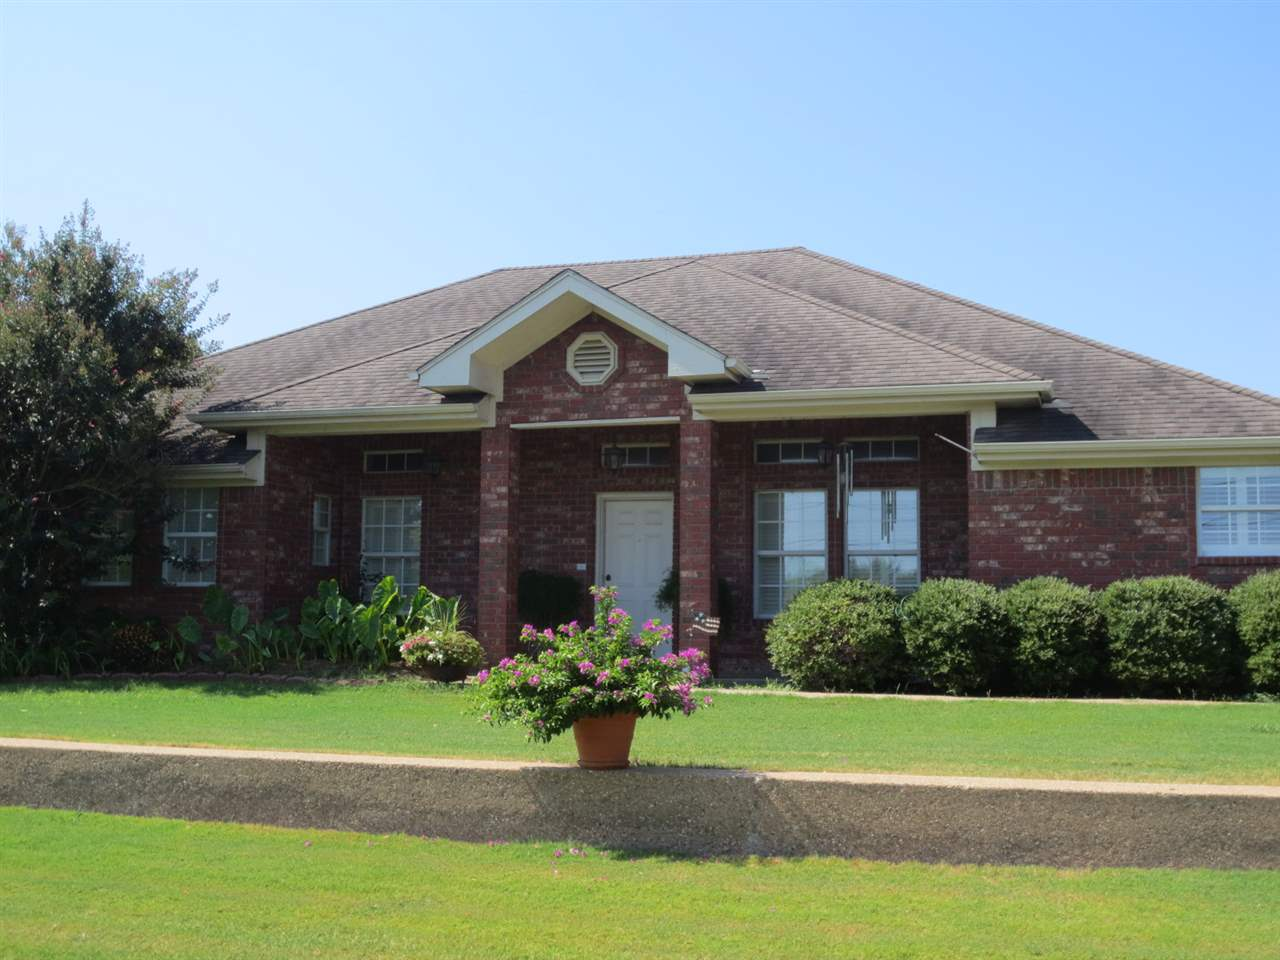 506 SUN VALLEY BLVD, Hewitt, TX 76643